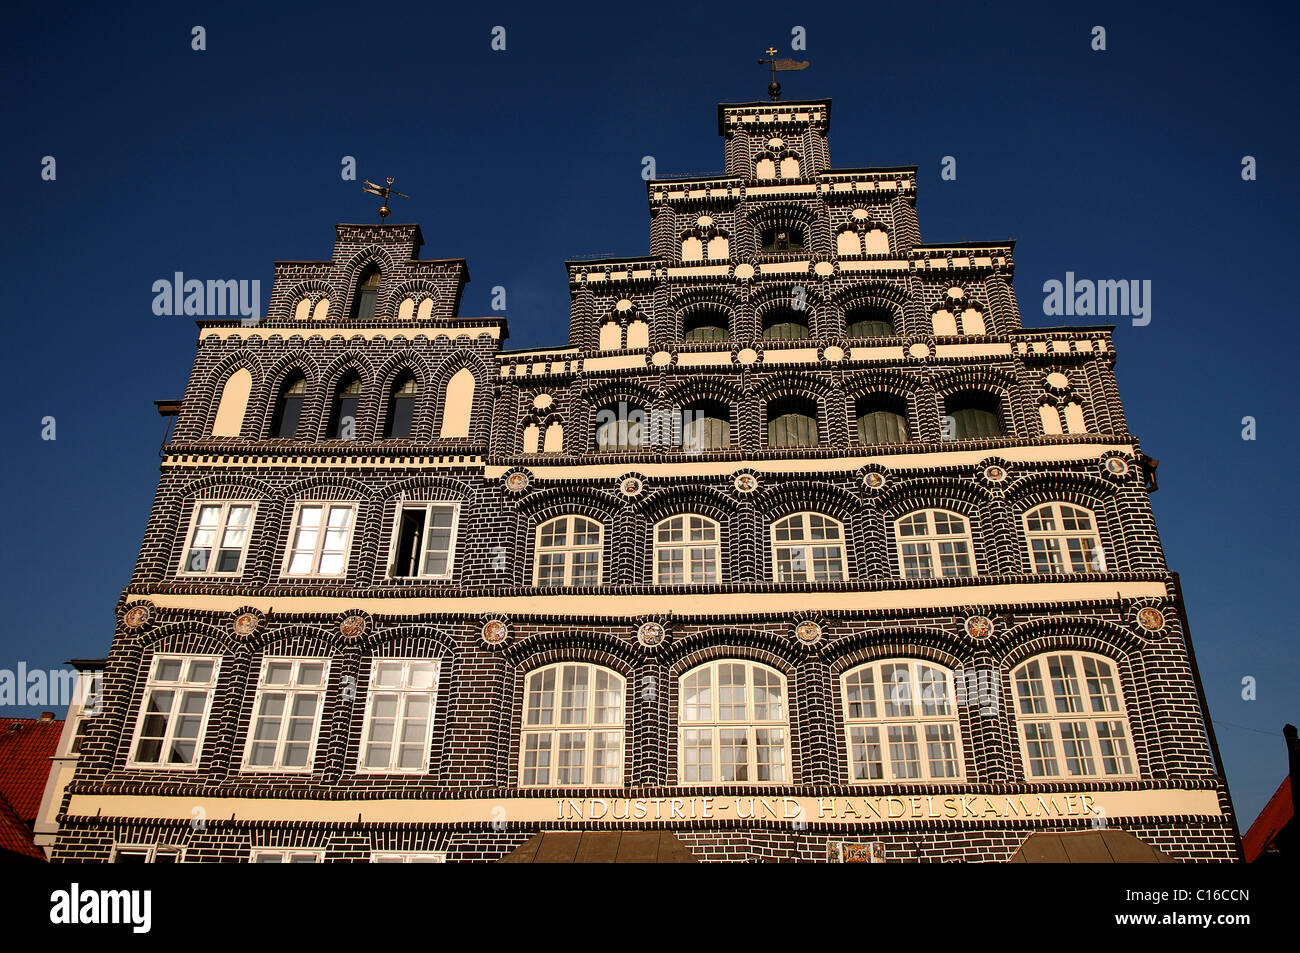 Renaissance facade of the Industire and Chamber of Commerce, in detail, Lueneburg, Lower Saxony, Germany, Europe Stock Photo